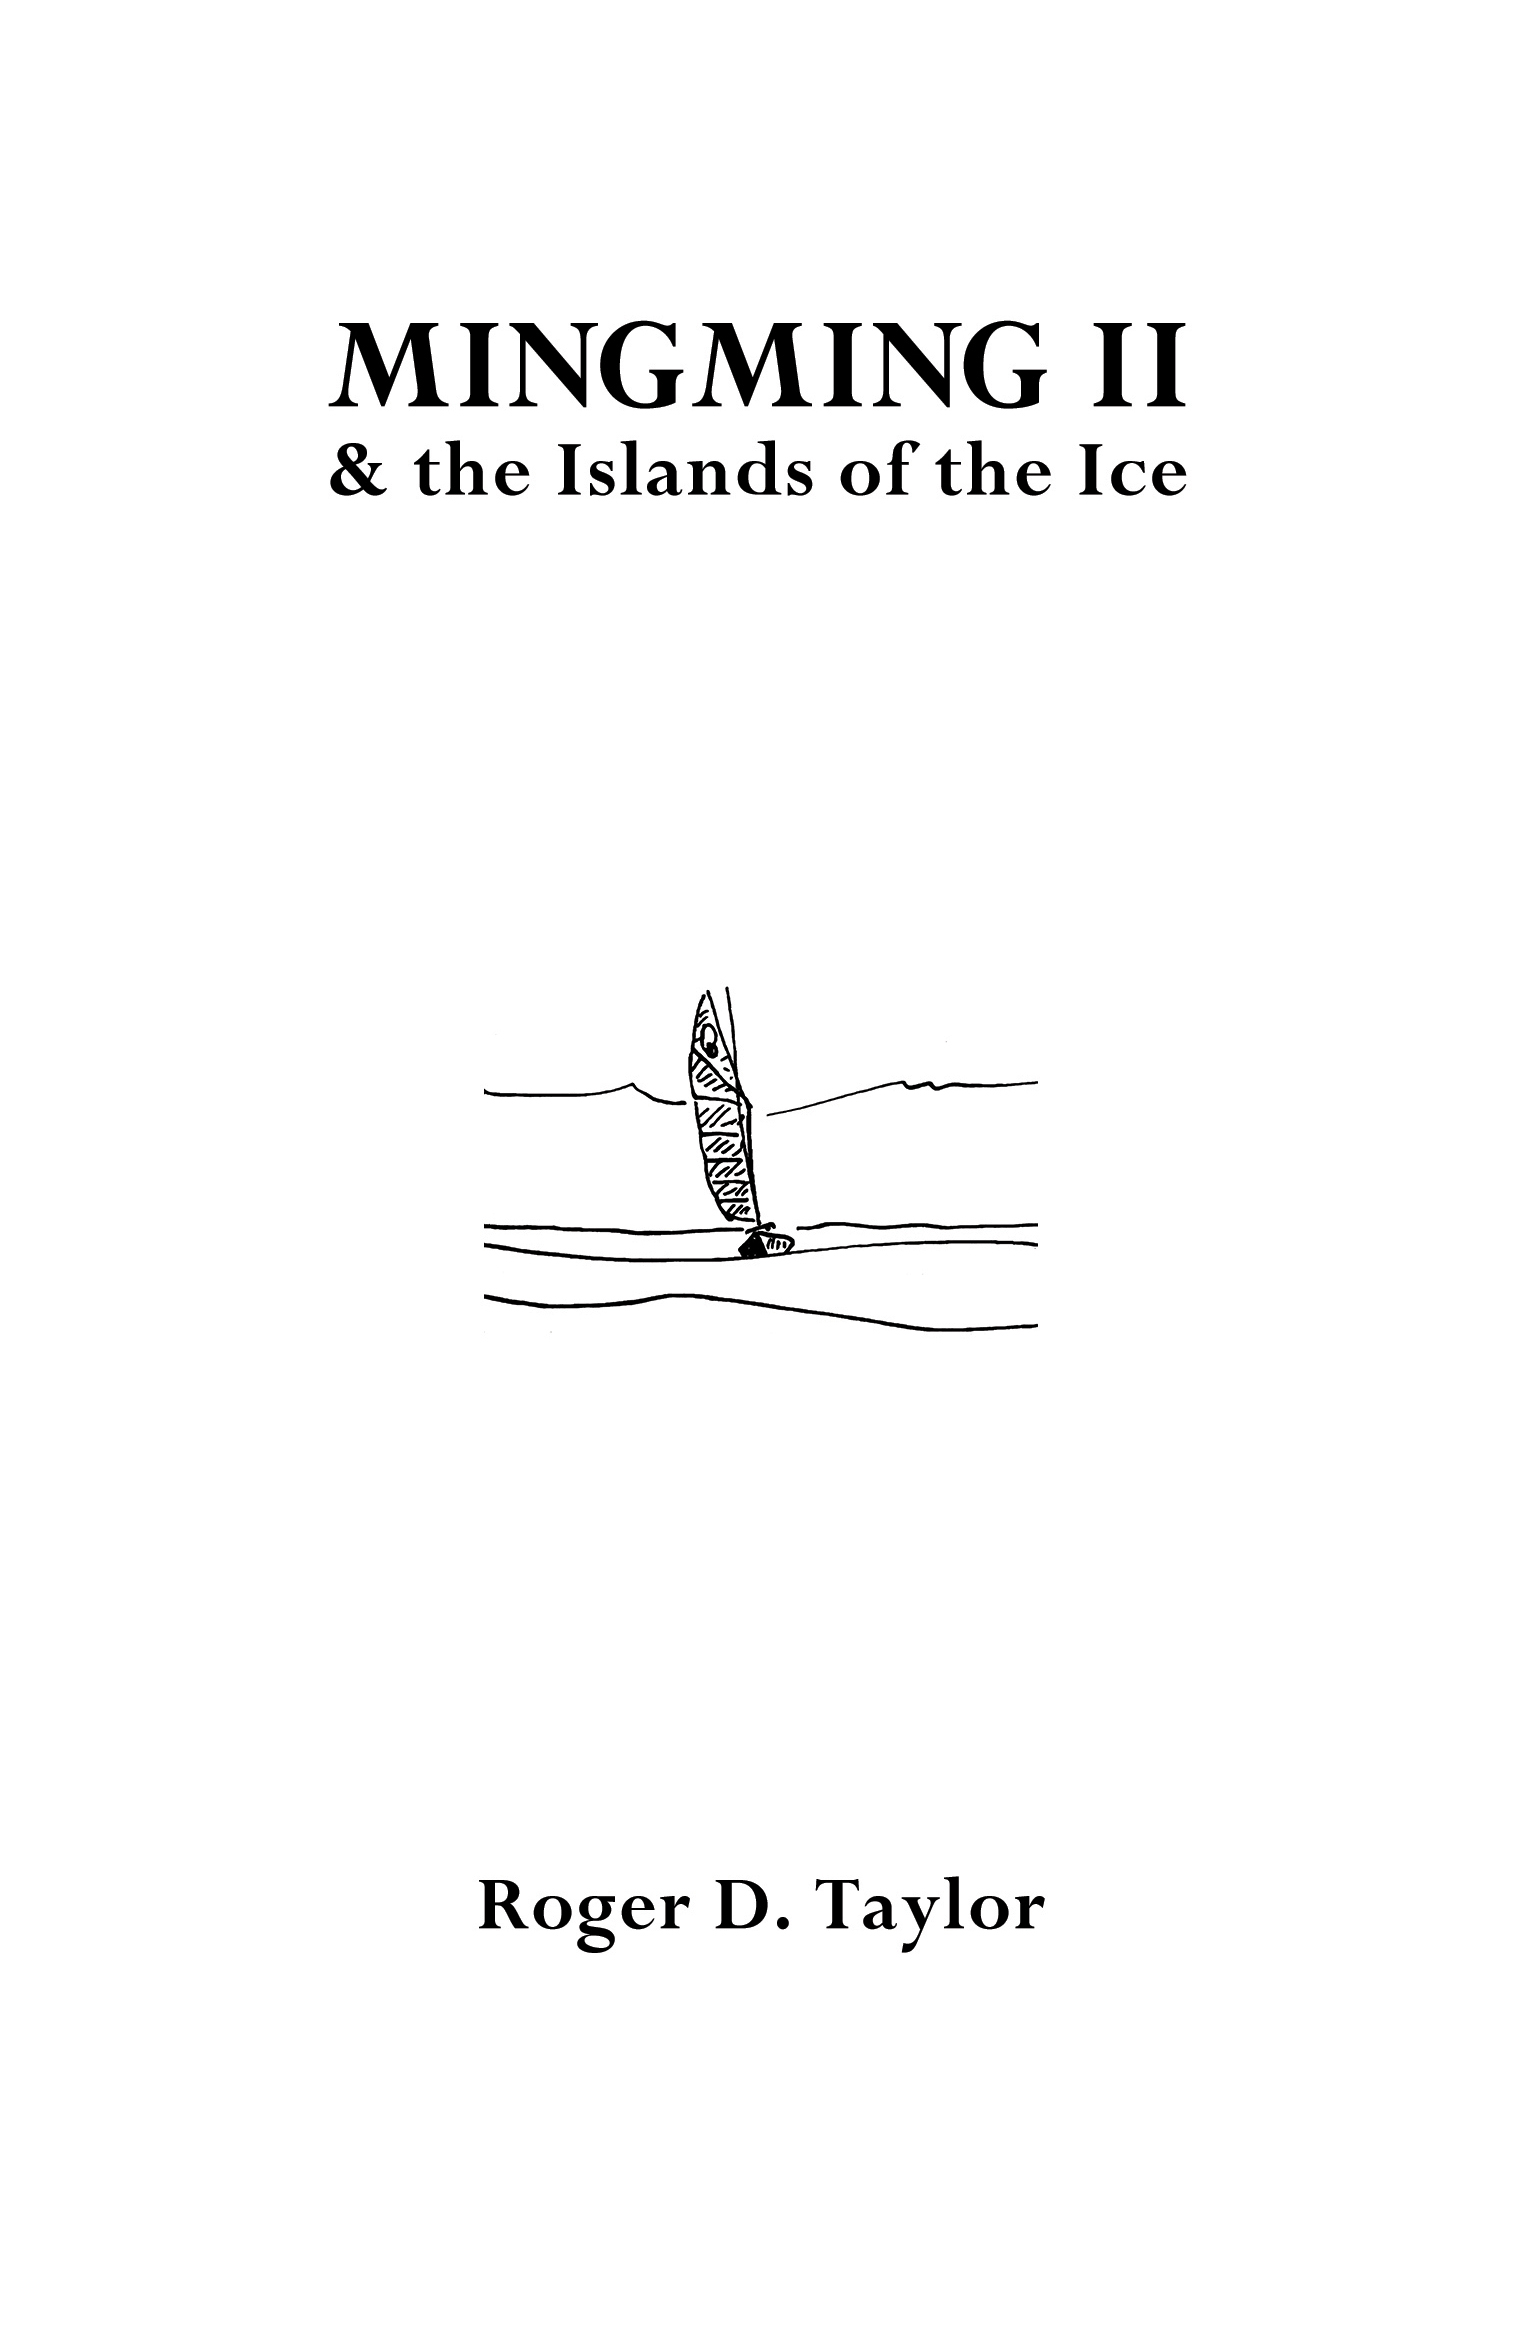 Mingming II & the Isands of the Ice Cover